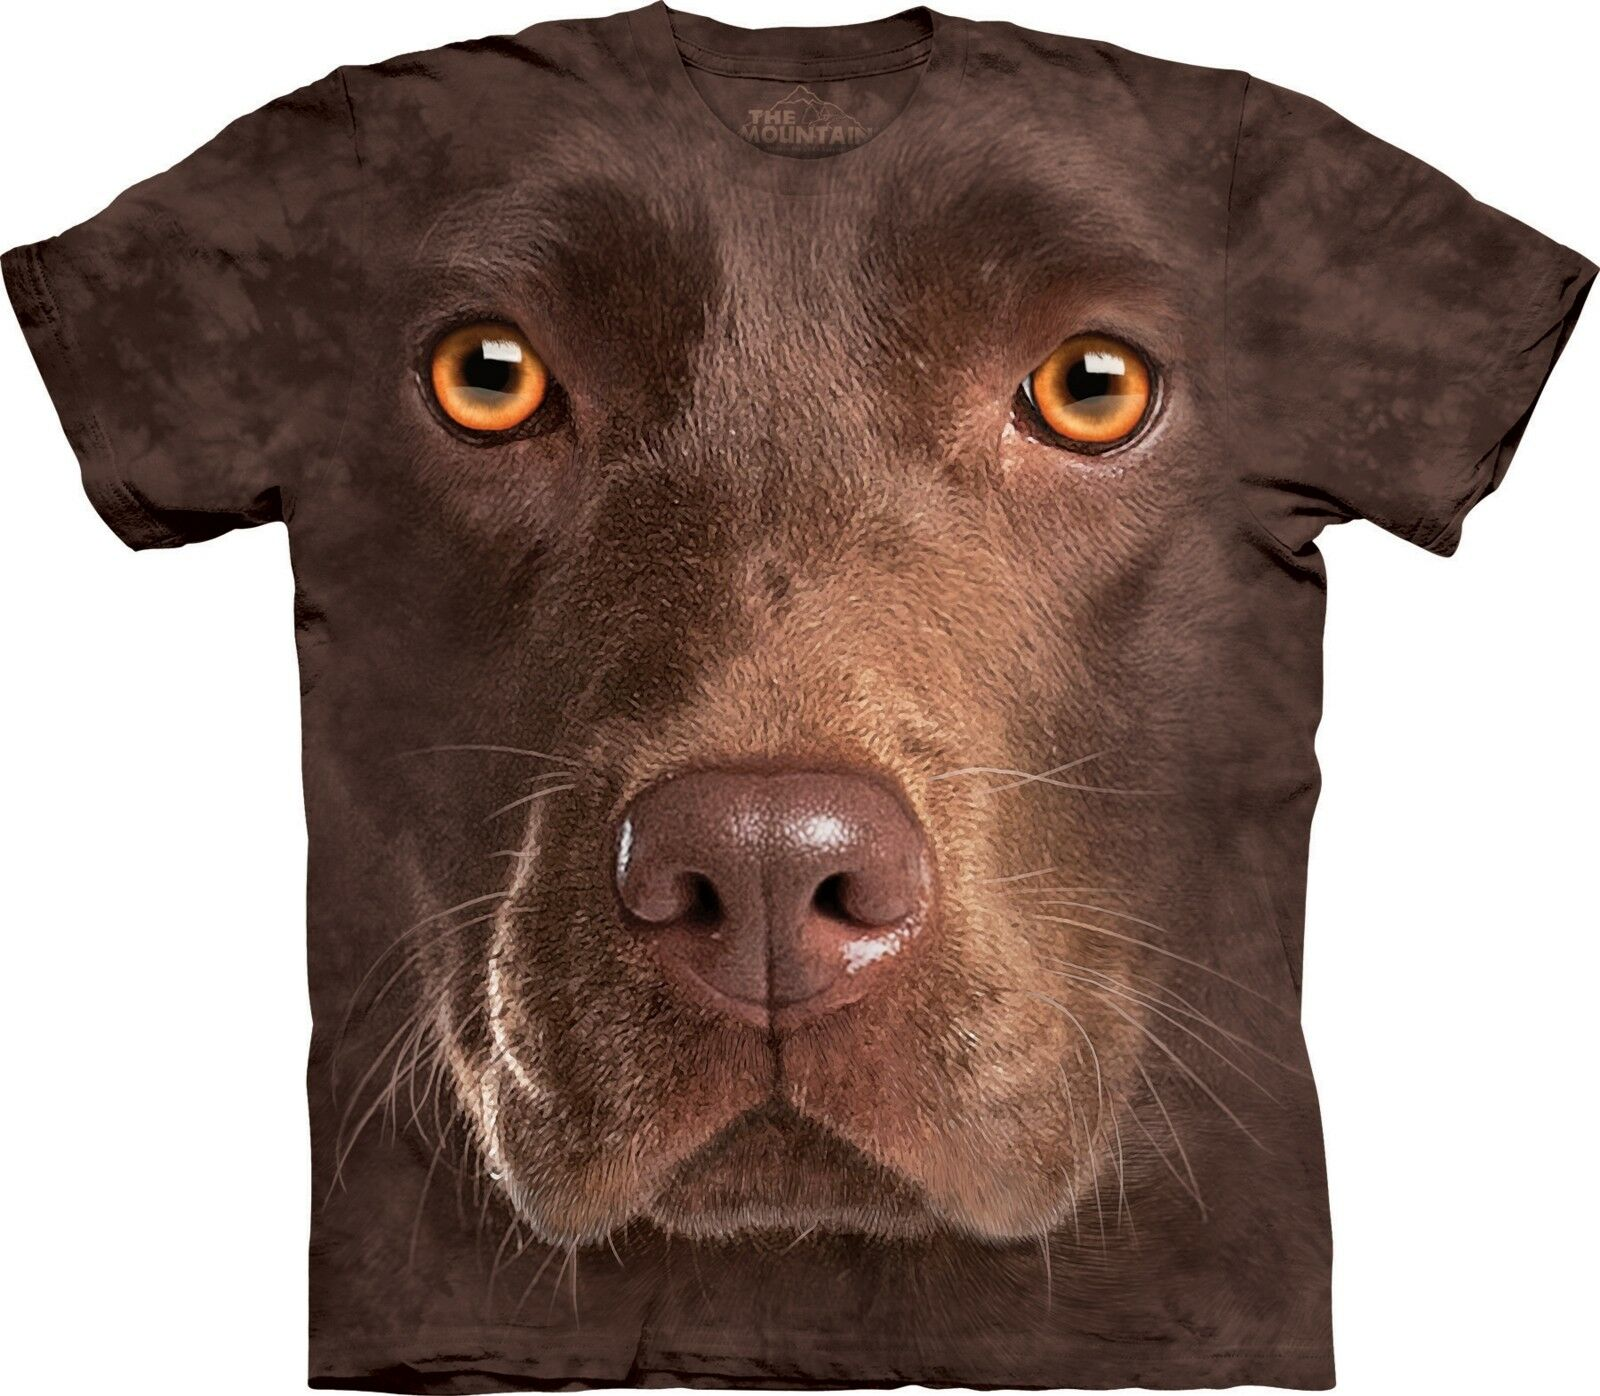 Chocolate Lab Face Dogs T Shirt Adult Unisex The Mountain